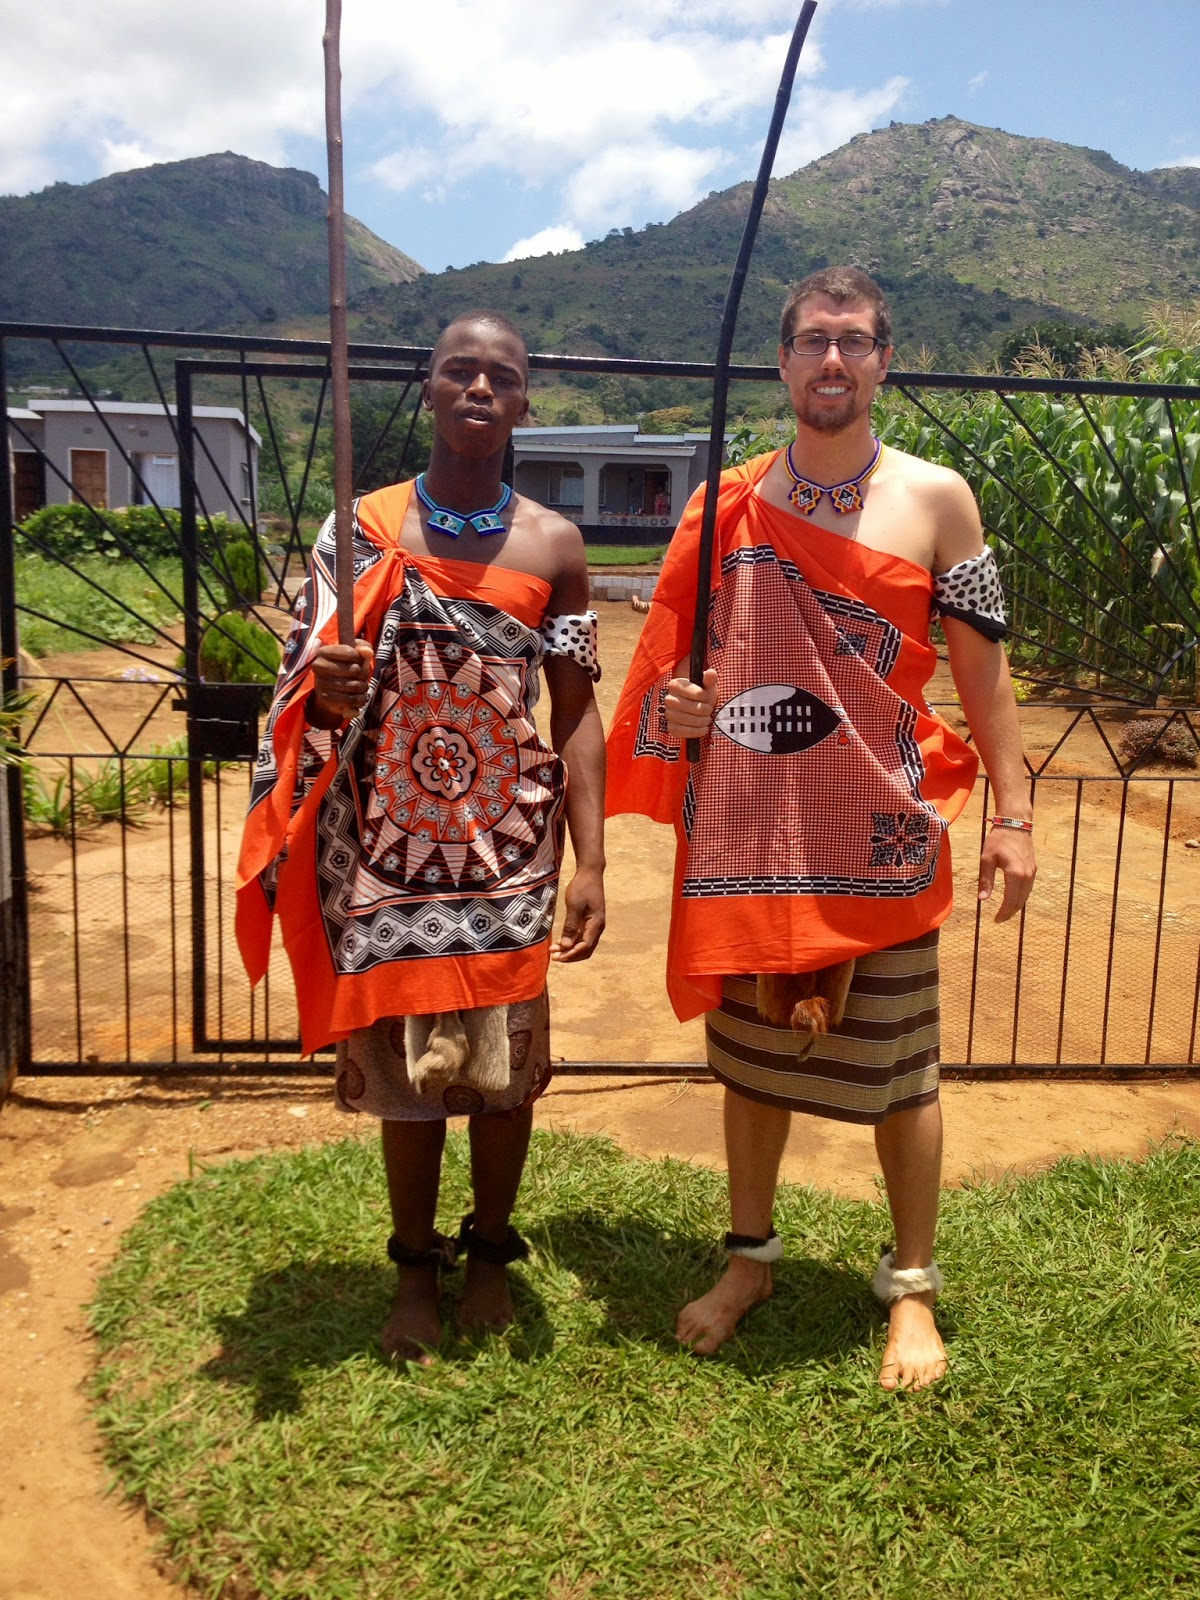 A national prayer incwala swazi adventures as we arrived i realized with no other peace corps volunteers attending i would be one of very few non swazis in traditional attire i was correct thecheapjerseys Image collections